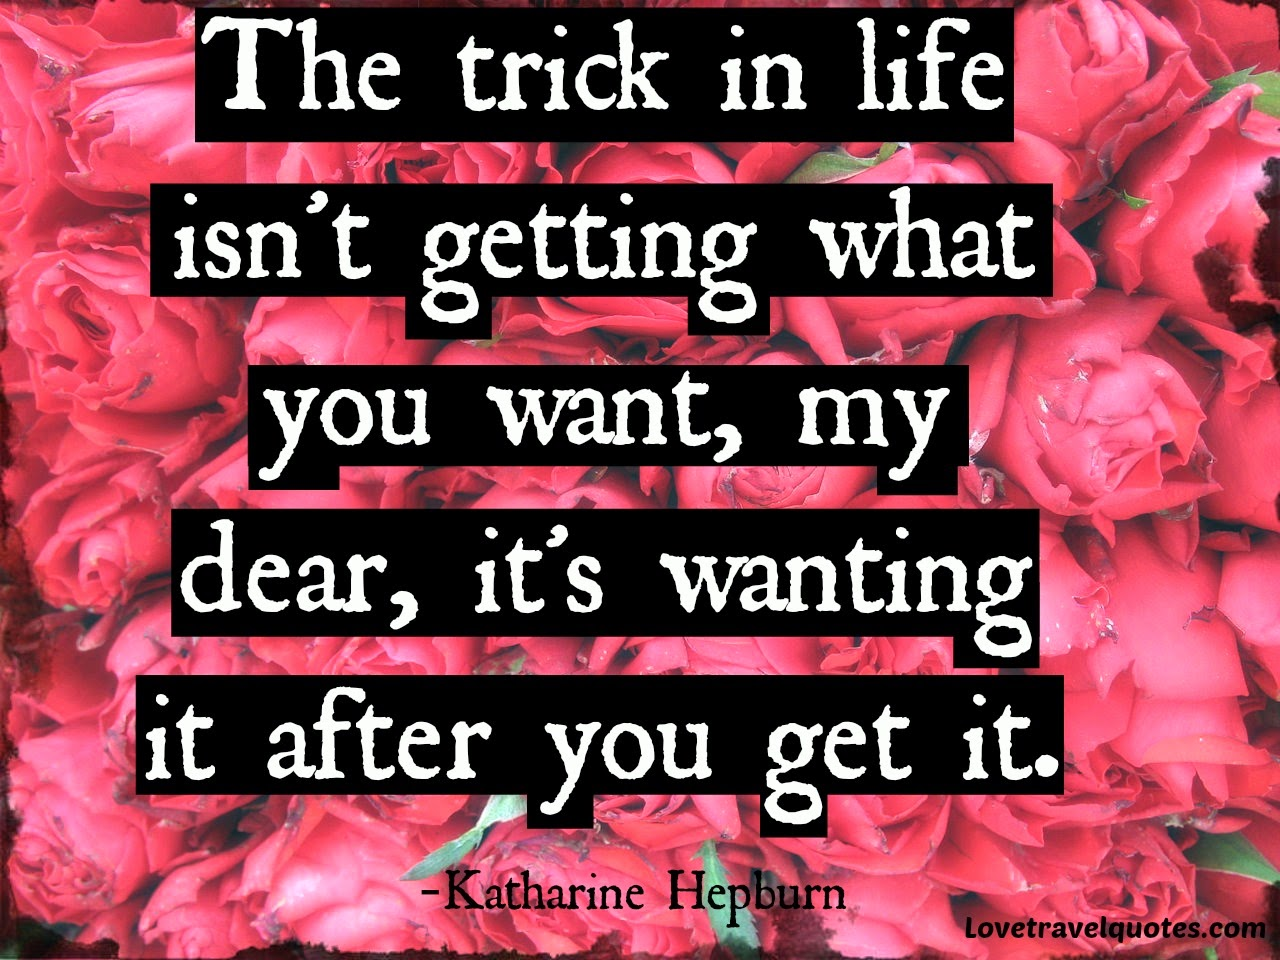 The trick in Life isn't getting what you want, my dear, it's wanting it after you get it